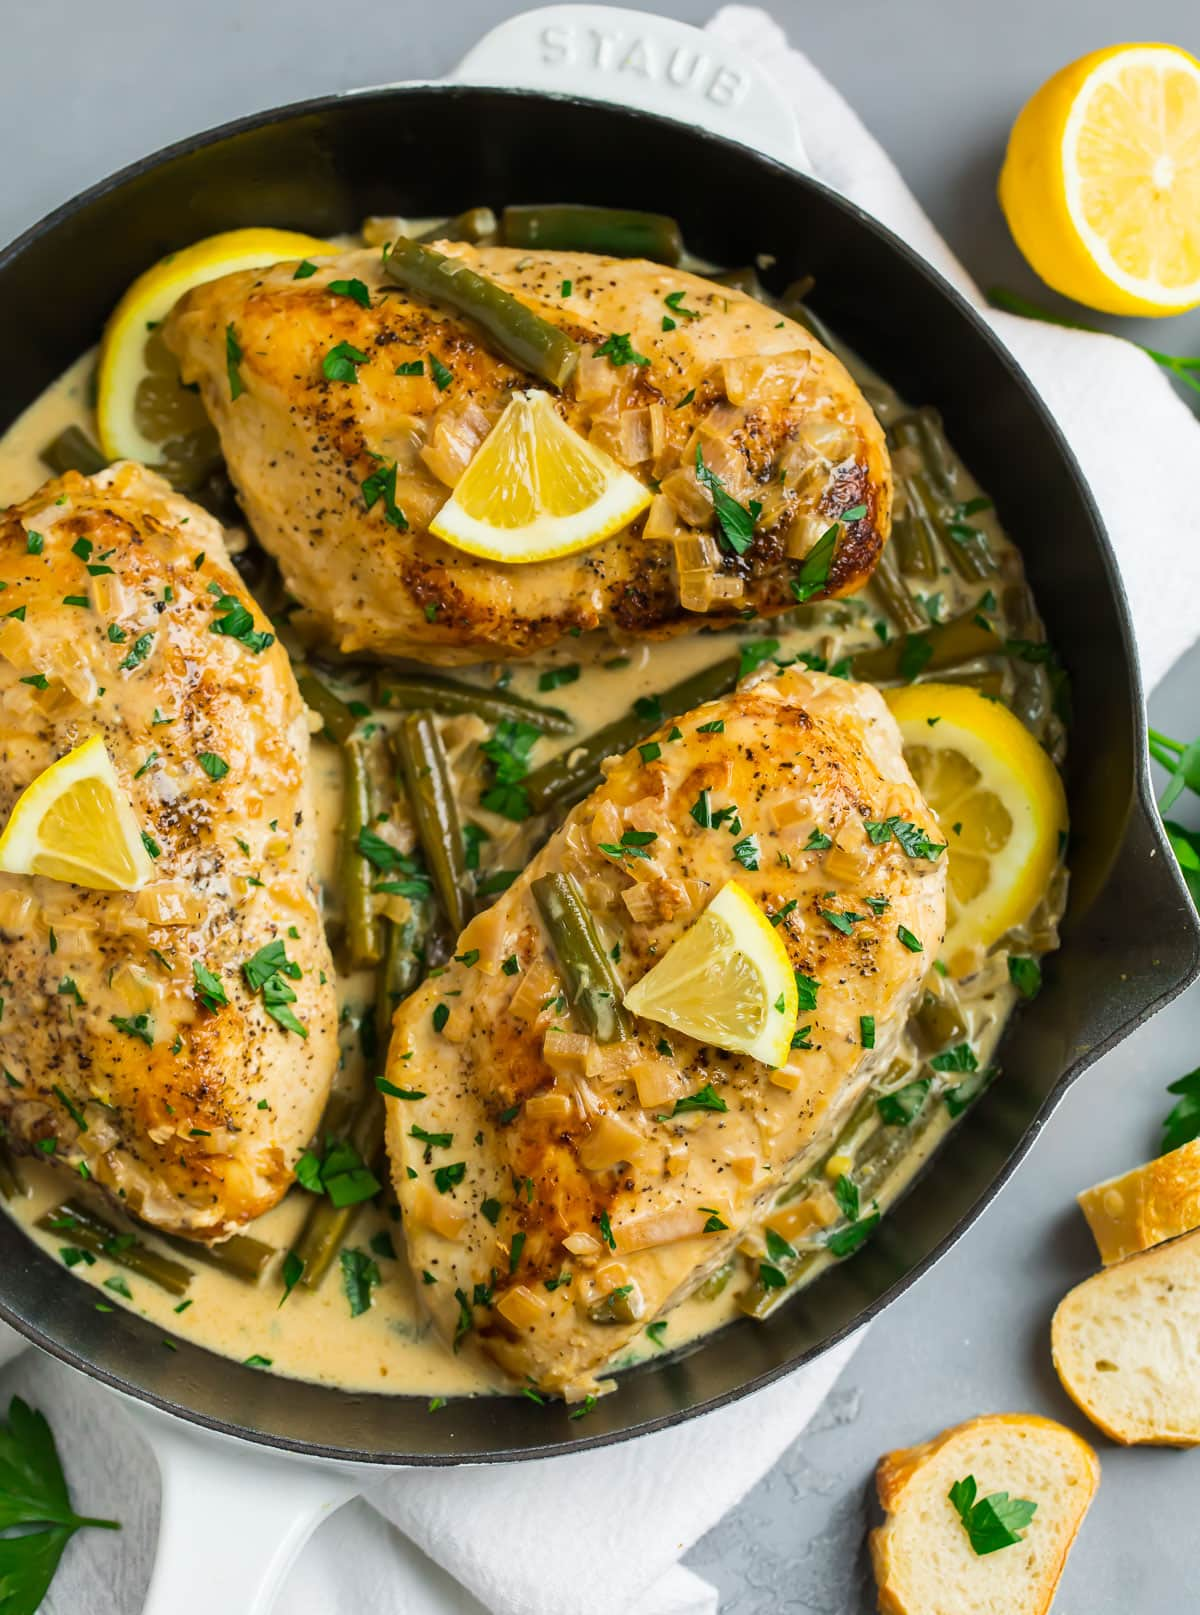 Lemon Chicken in a Skillet